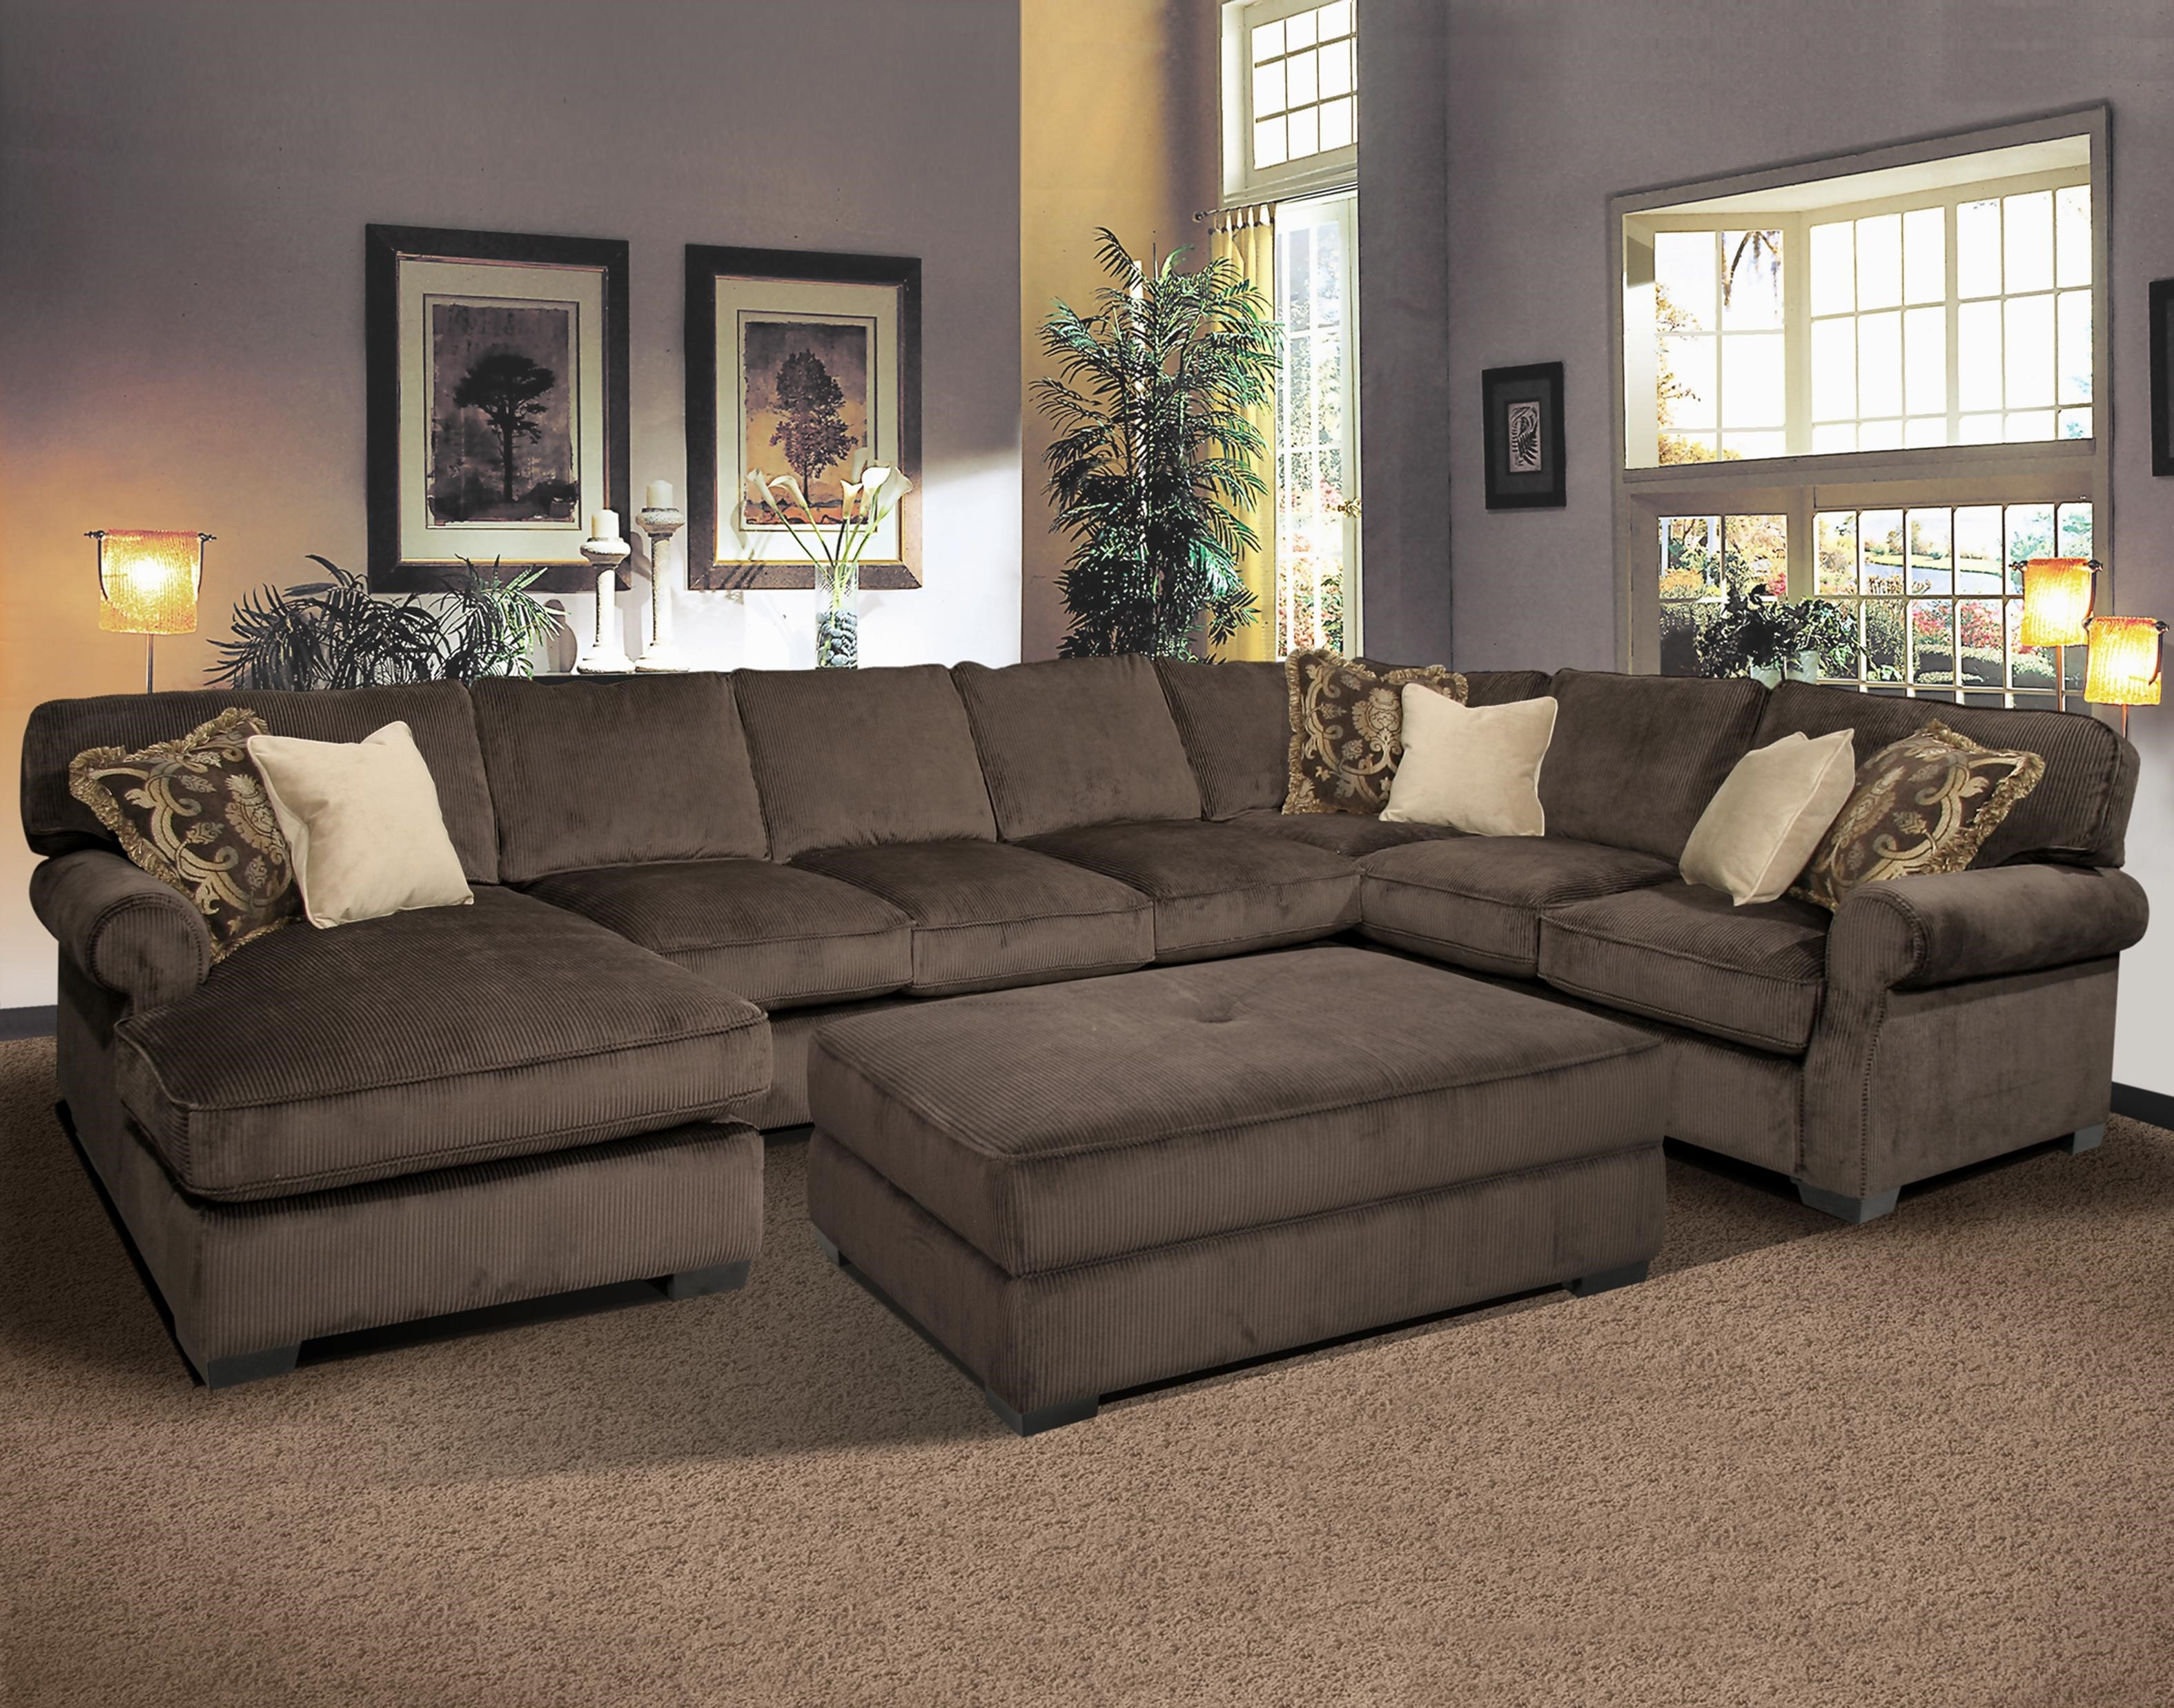 apartment sofas calgary second hand chesterfield glasgow 10 collection of sectional at sofa ideas